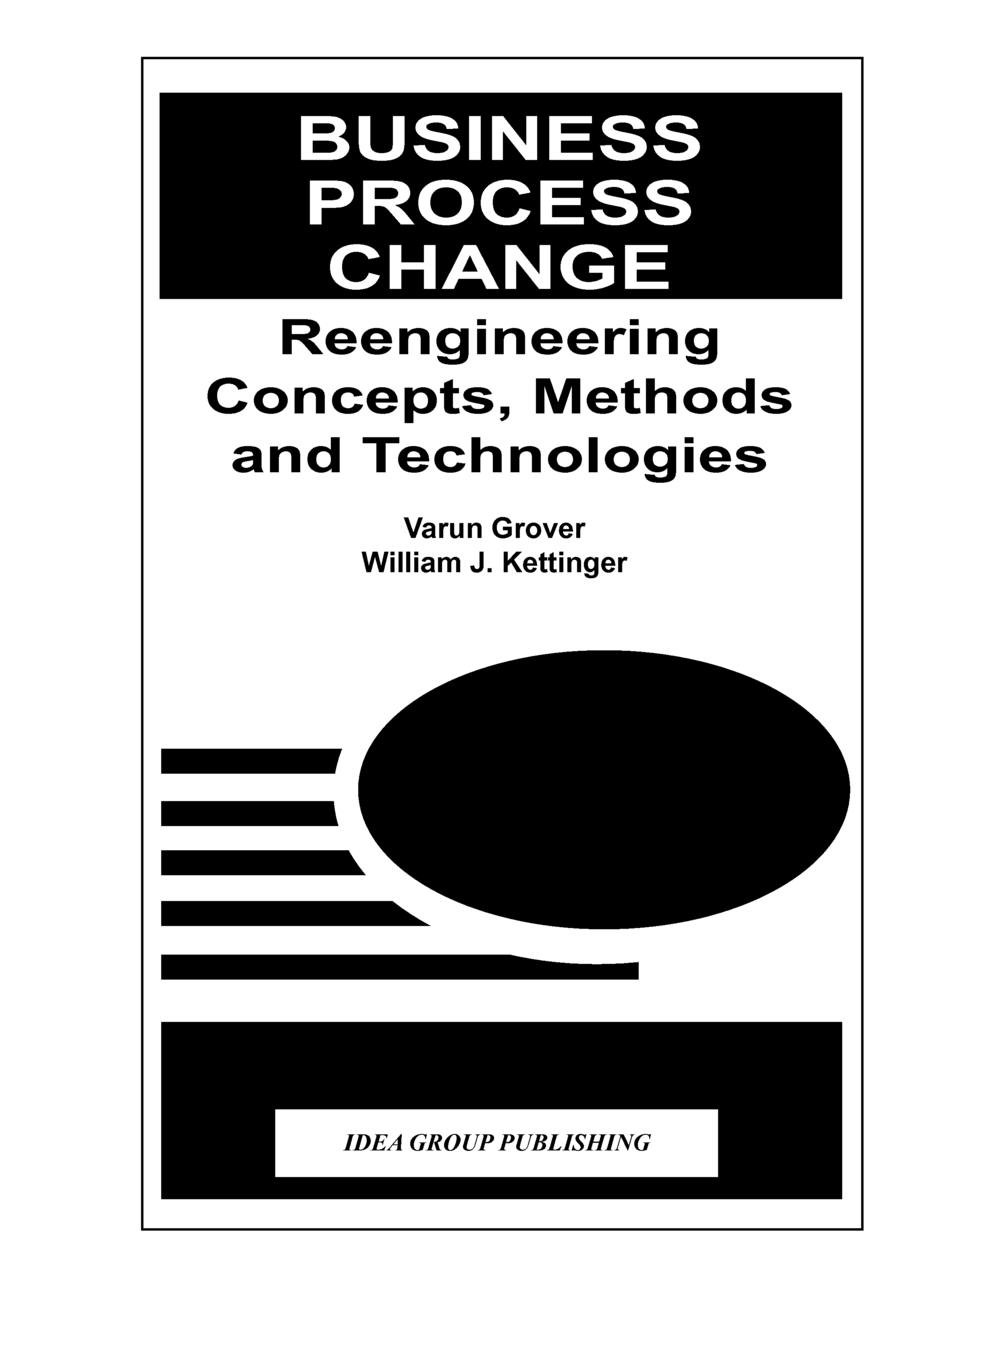 Business Process Change  Reengineering Concepts Methods And Technologies